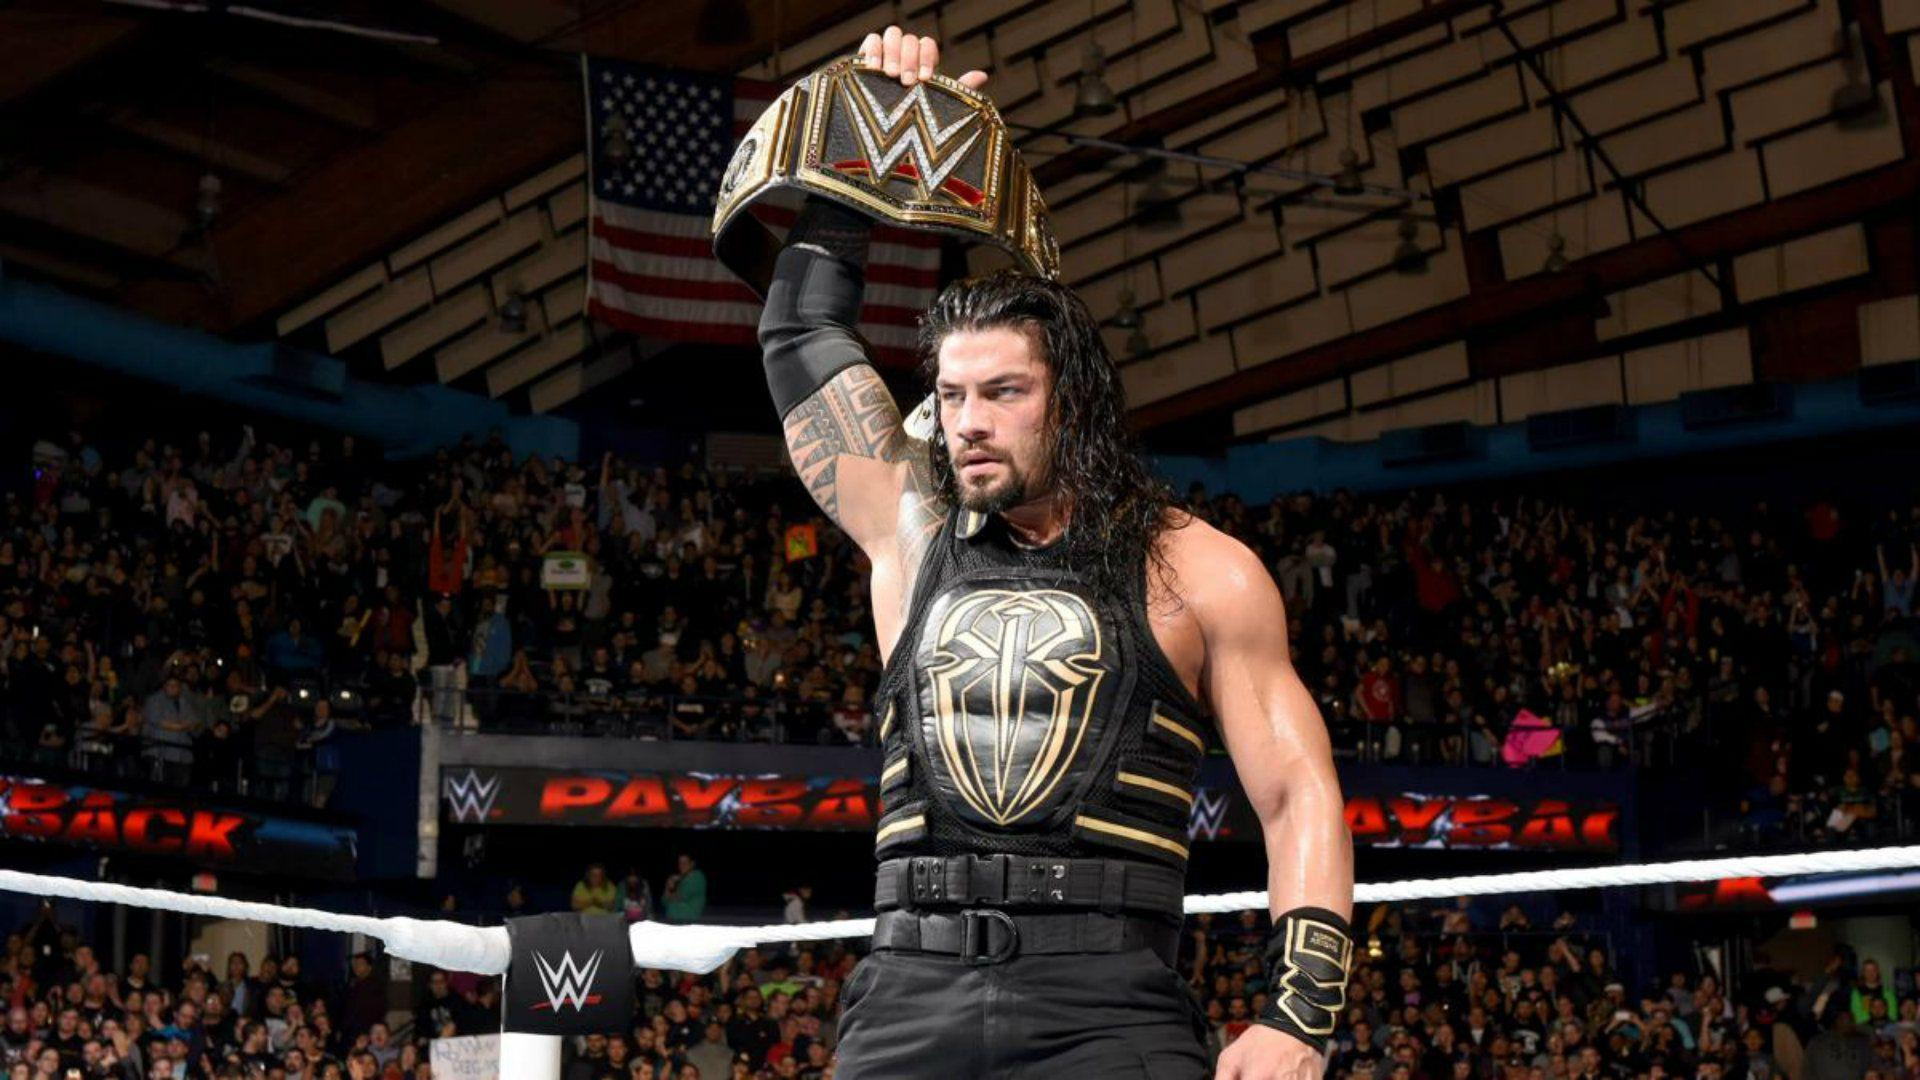 Roman Reigns Wallpapers Free Download